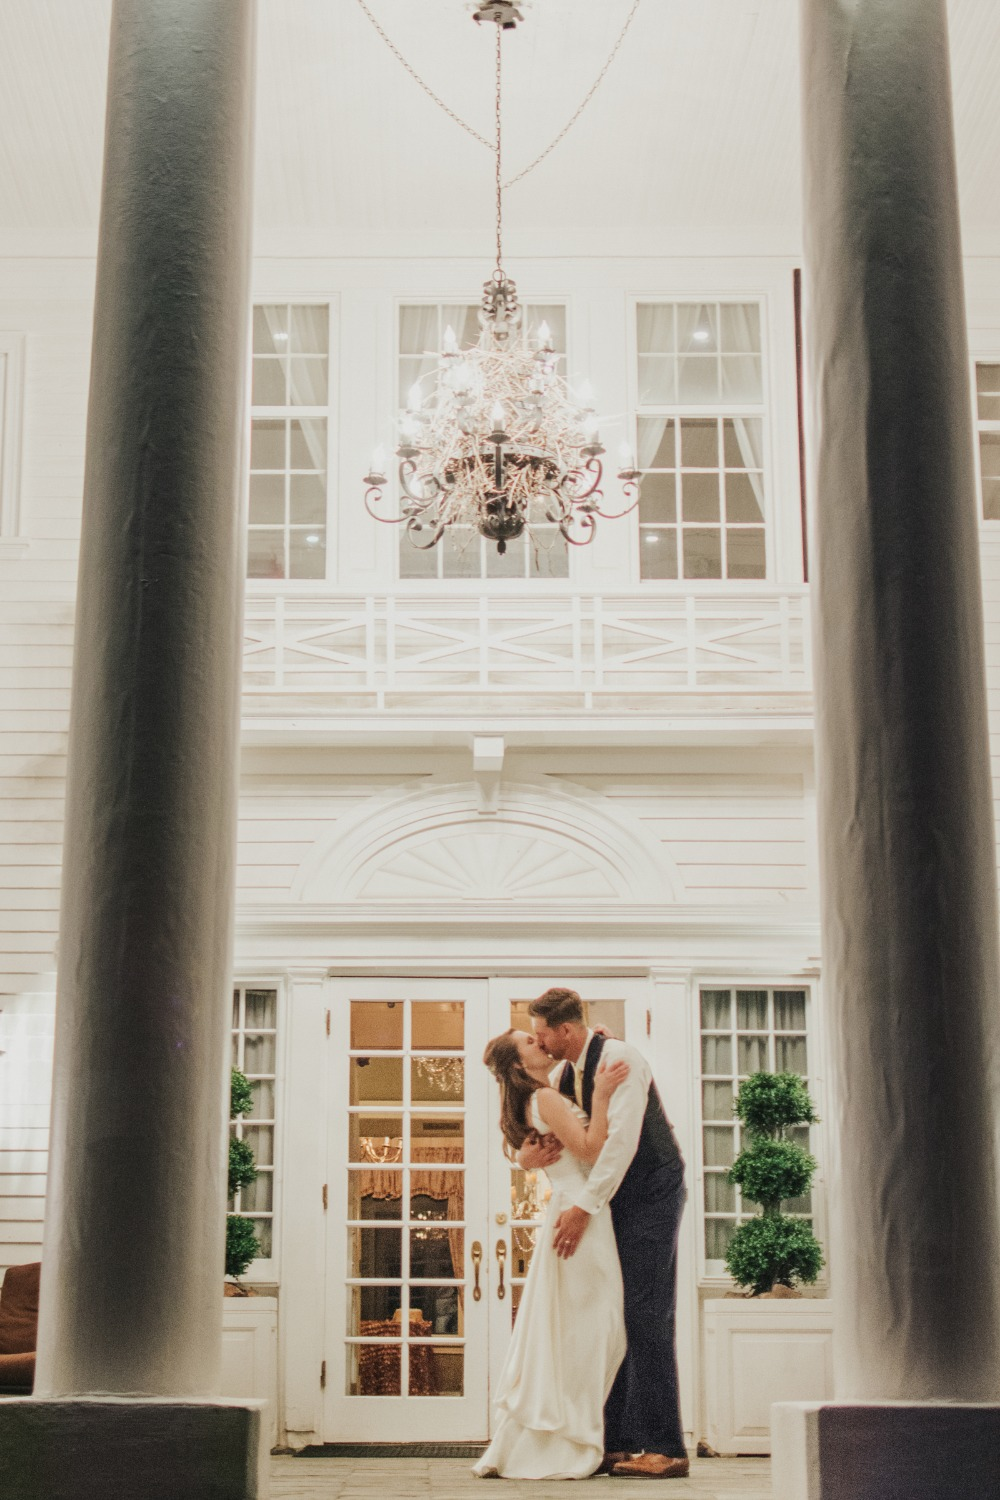 Kiss under a chandelier